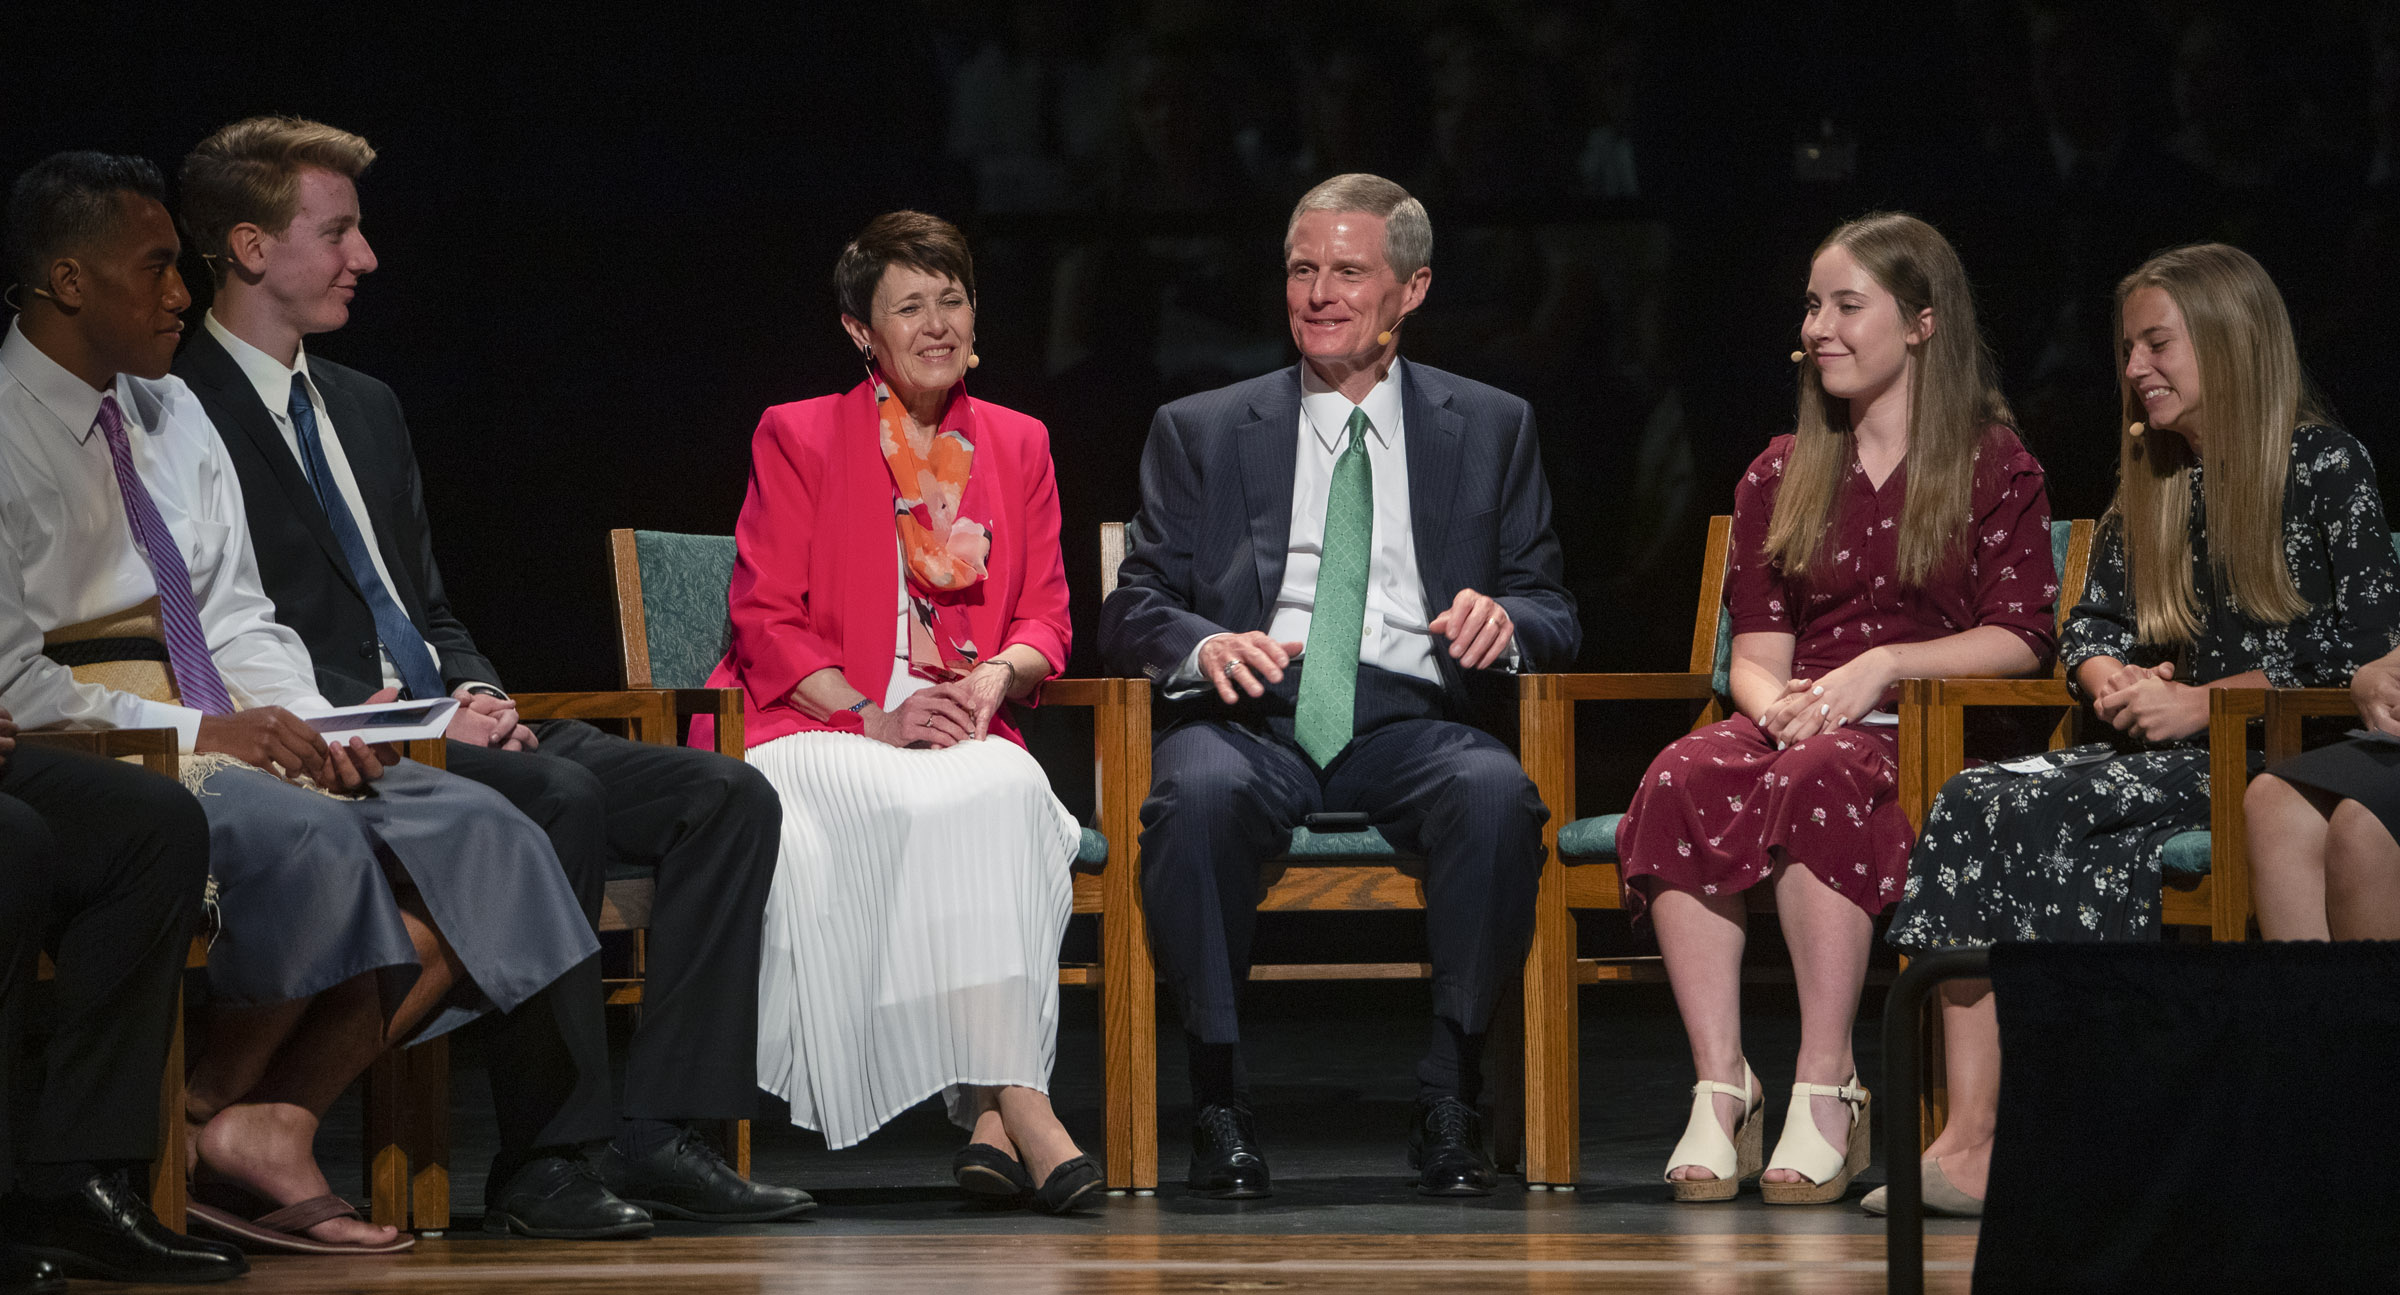 Elder David A. Bednar of the Quorum of the Twelve Apostles and his wife, Sister Susan Bednar, speak with youth in a panel discussion during a youth devotional at the Interstake Center on the Oakland California Temple grounds on Saturday June 15, 2019.